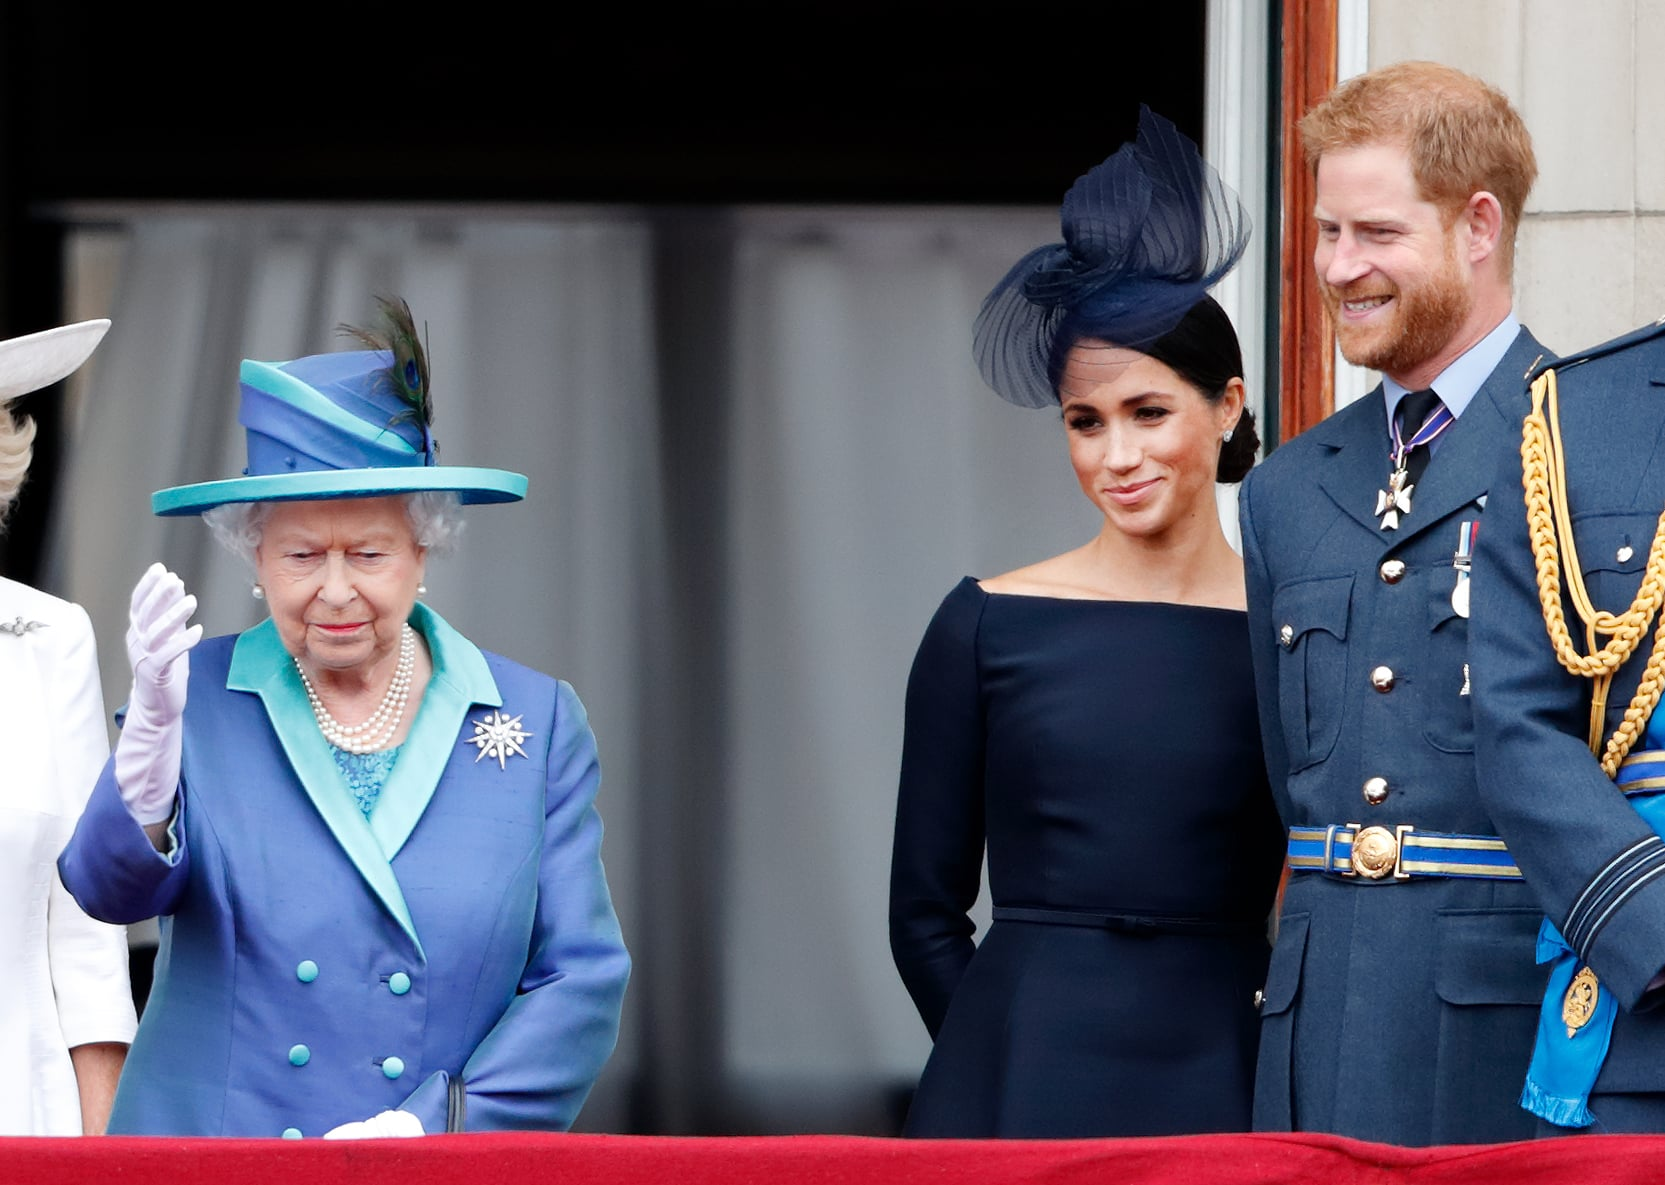 """The Queen Confirms Crisis Talks Are Over After Finding a """"Way Forward"""" For Meghan and Harry"""